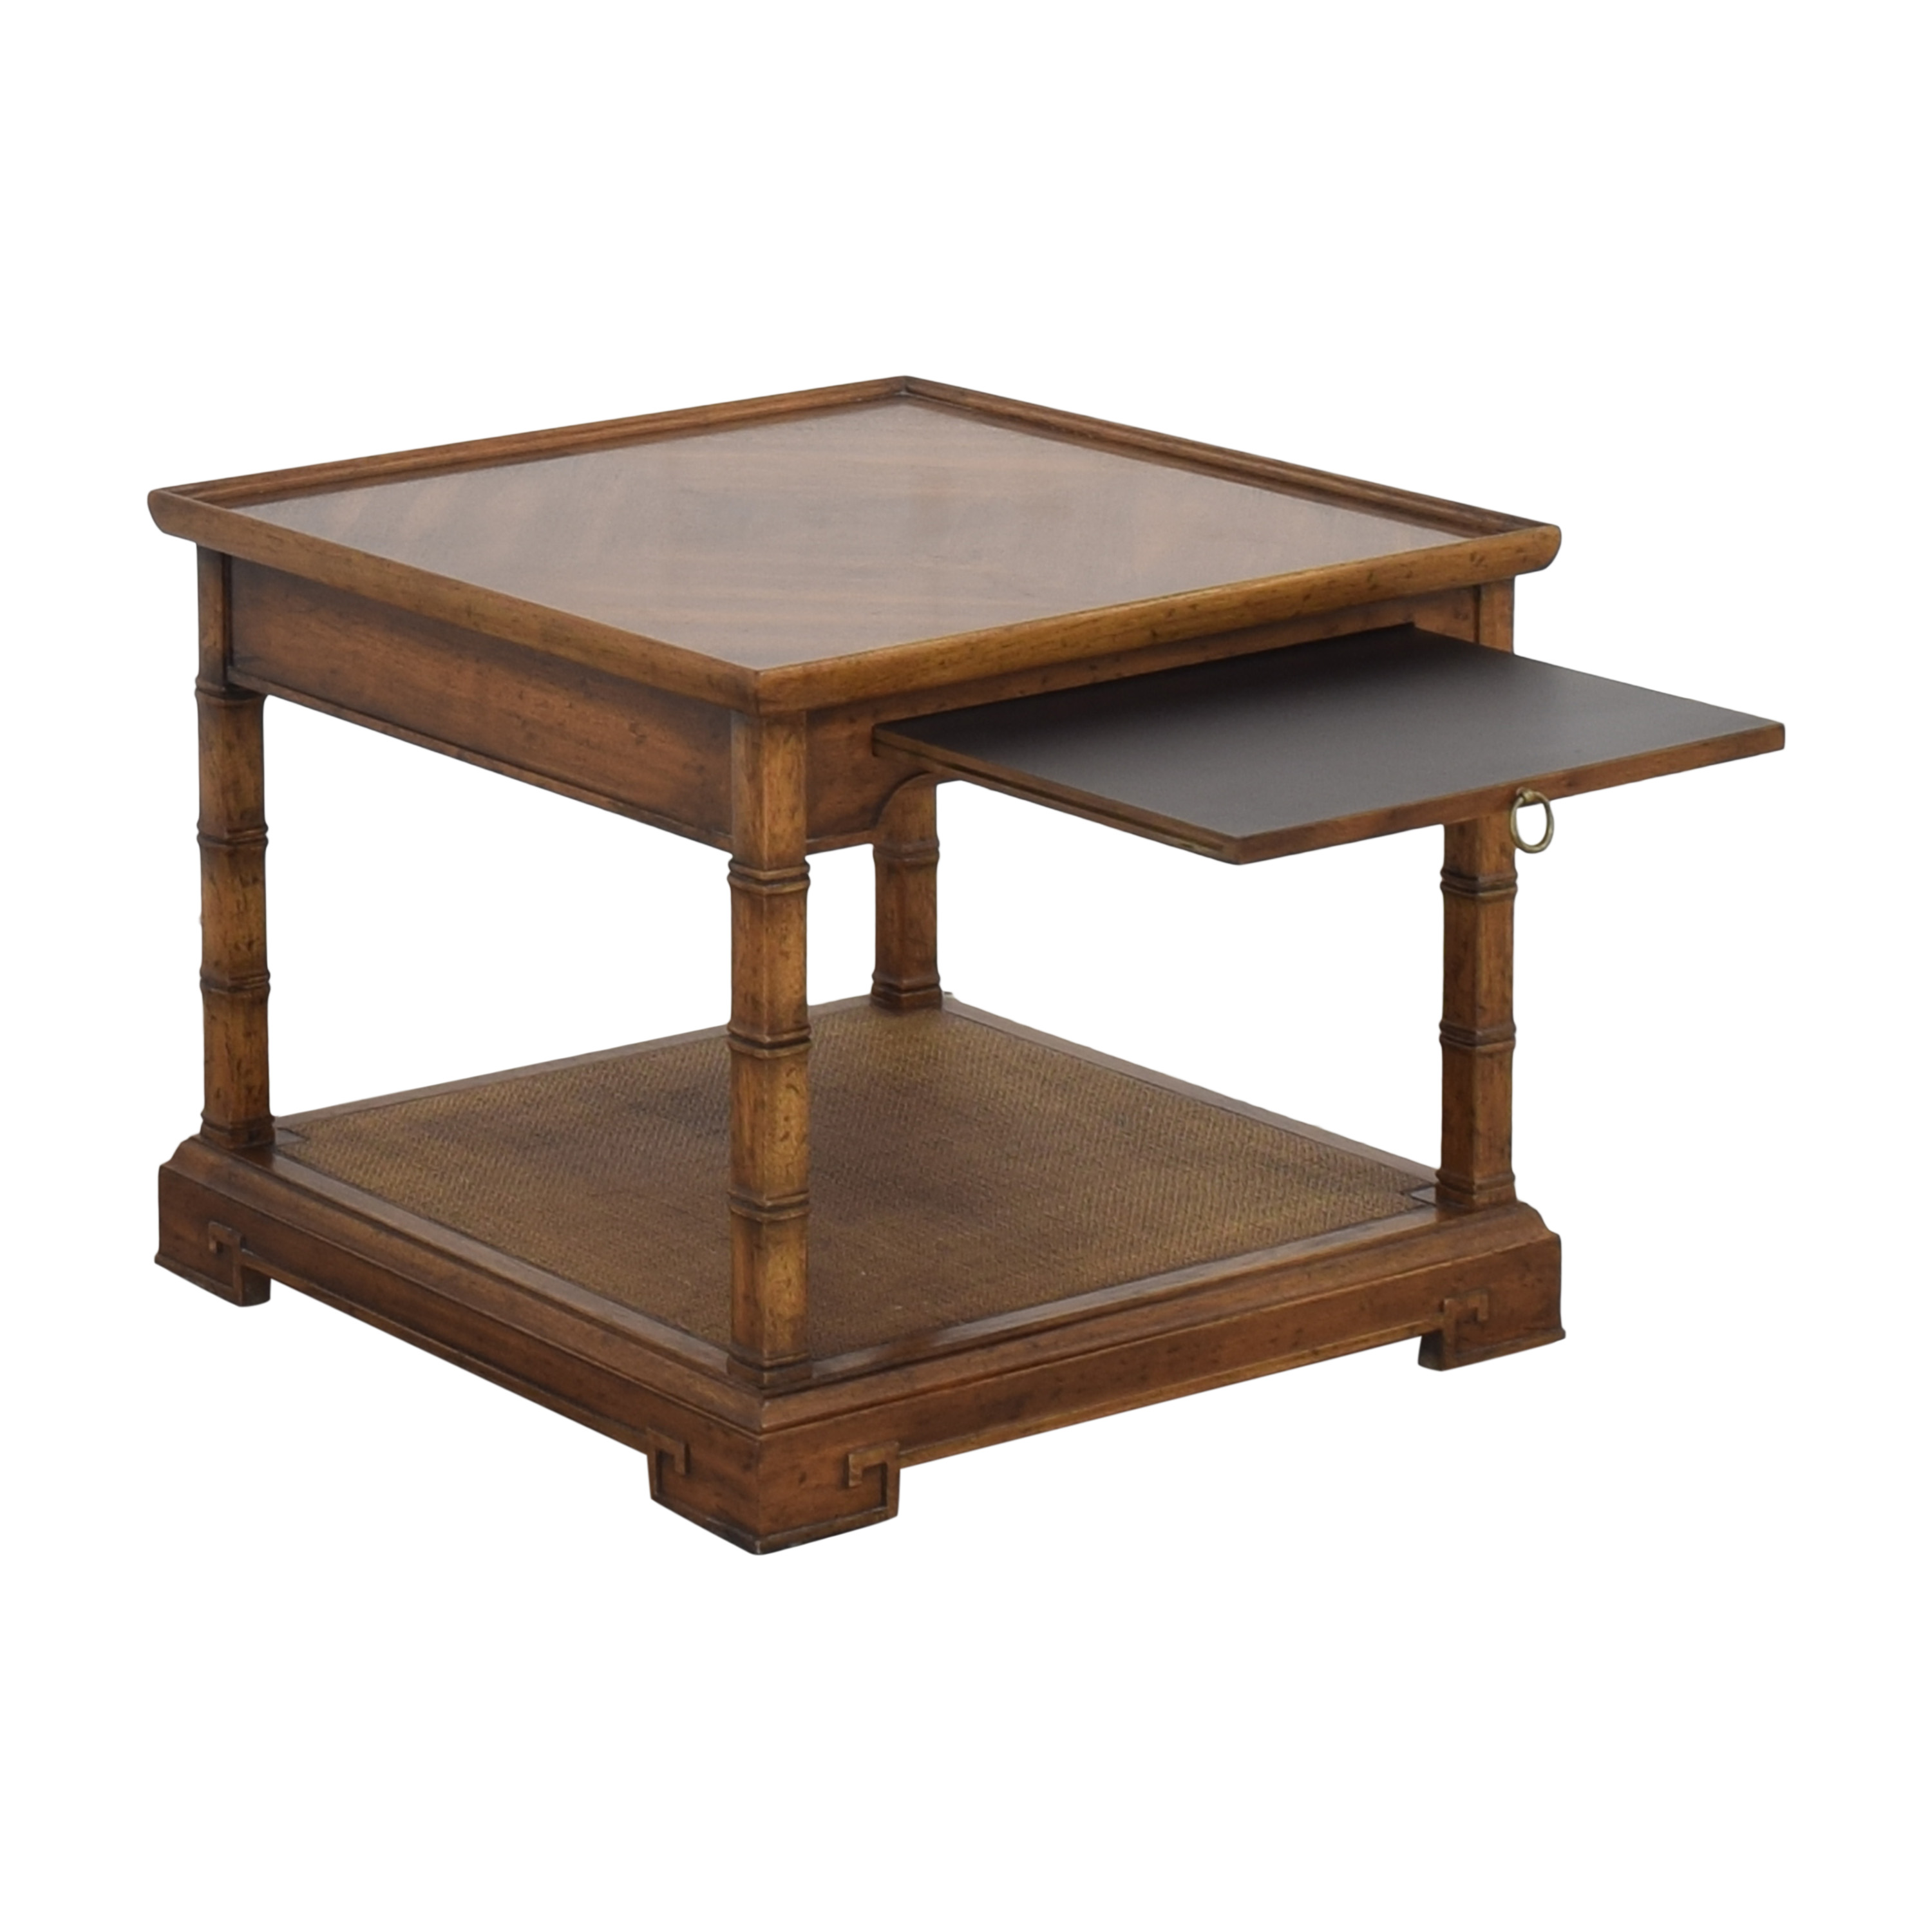 Heritage Heritage End Table with Desk Extension brown